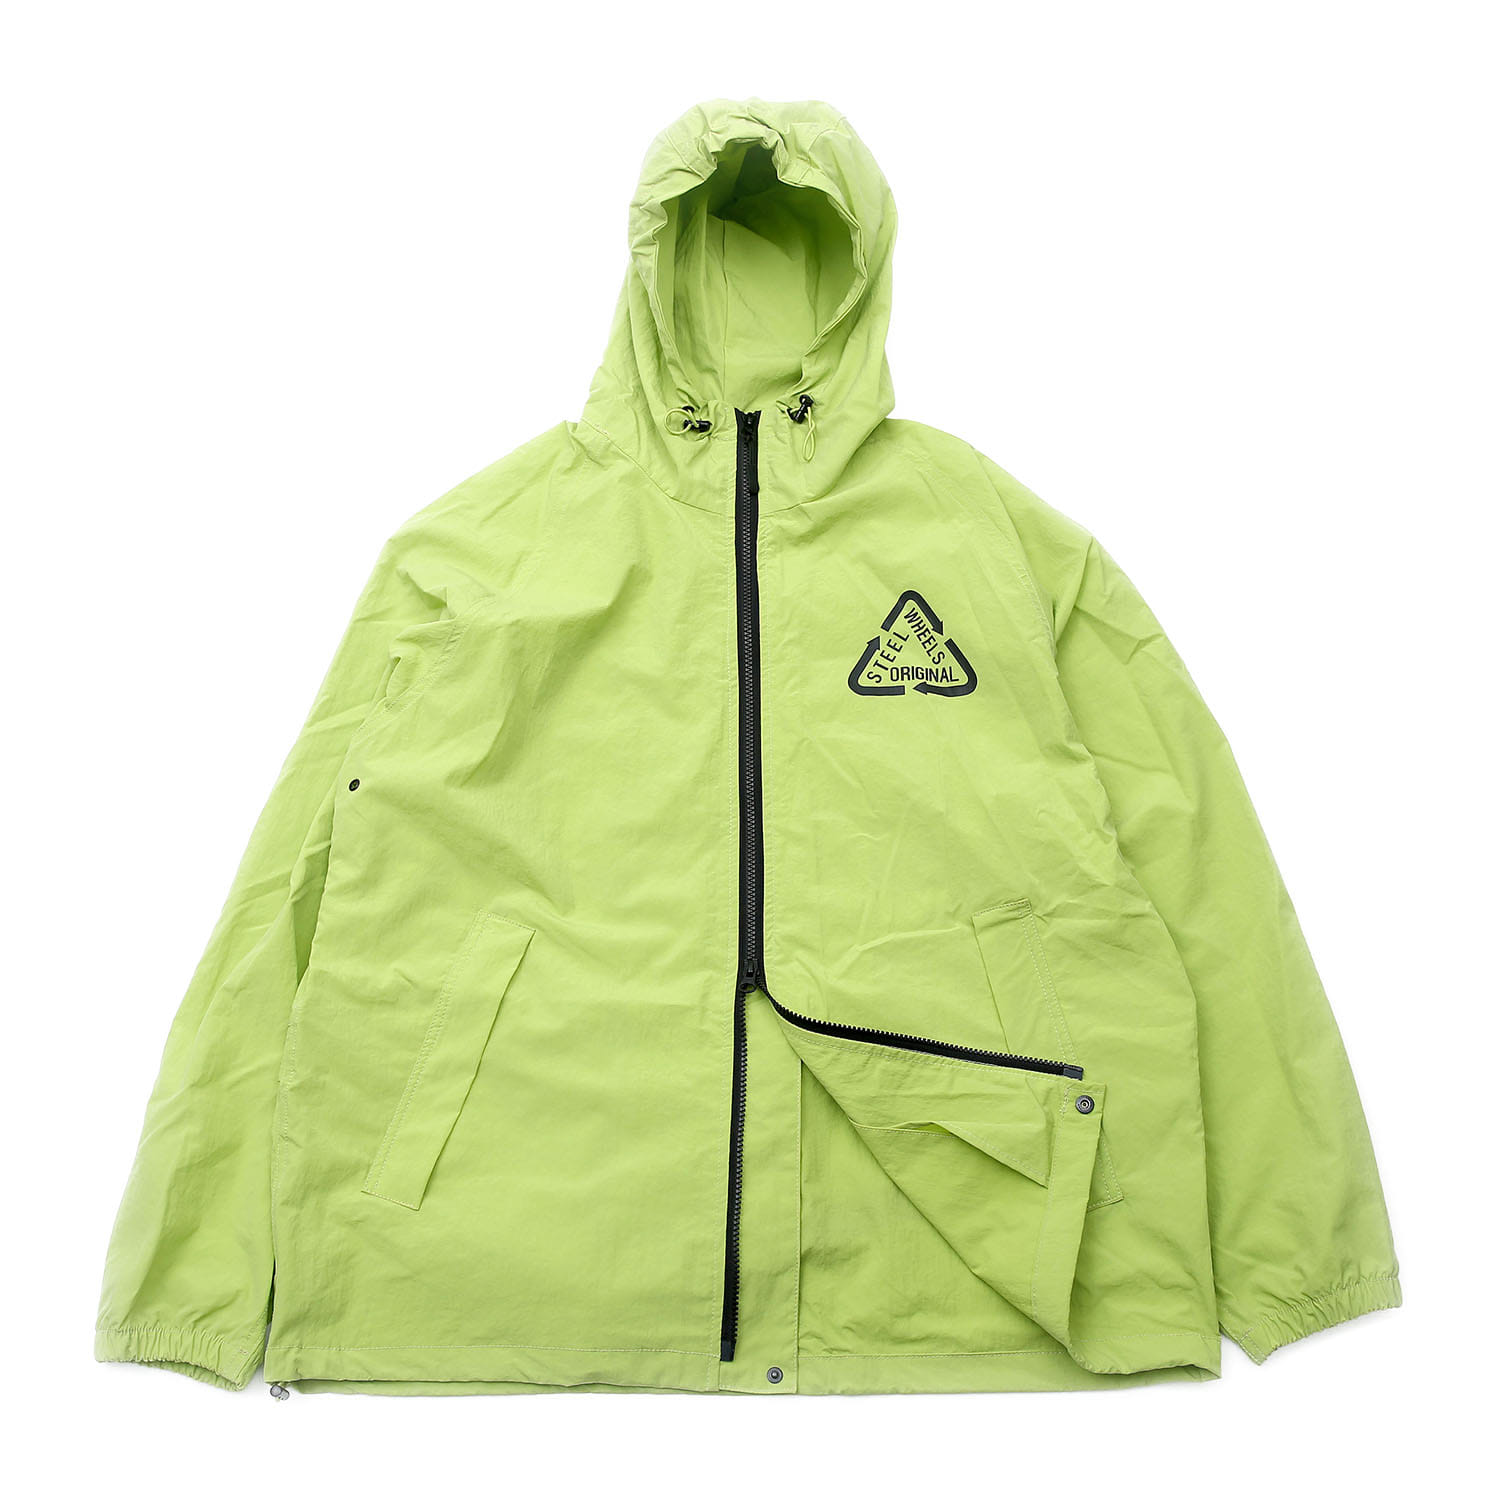 Steelwheels Reflective Nylon JKT (Lime)